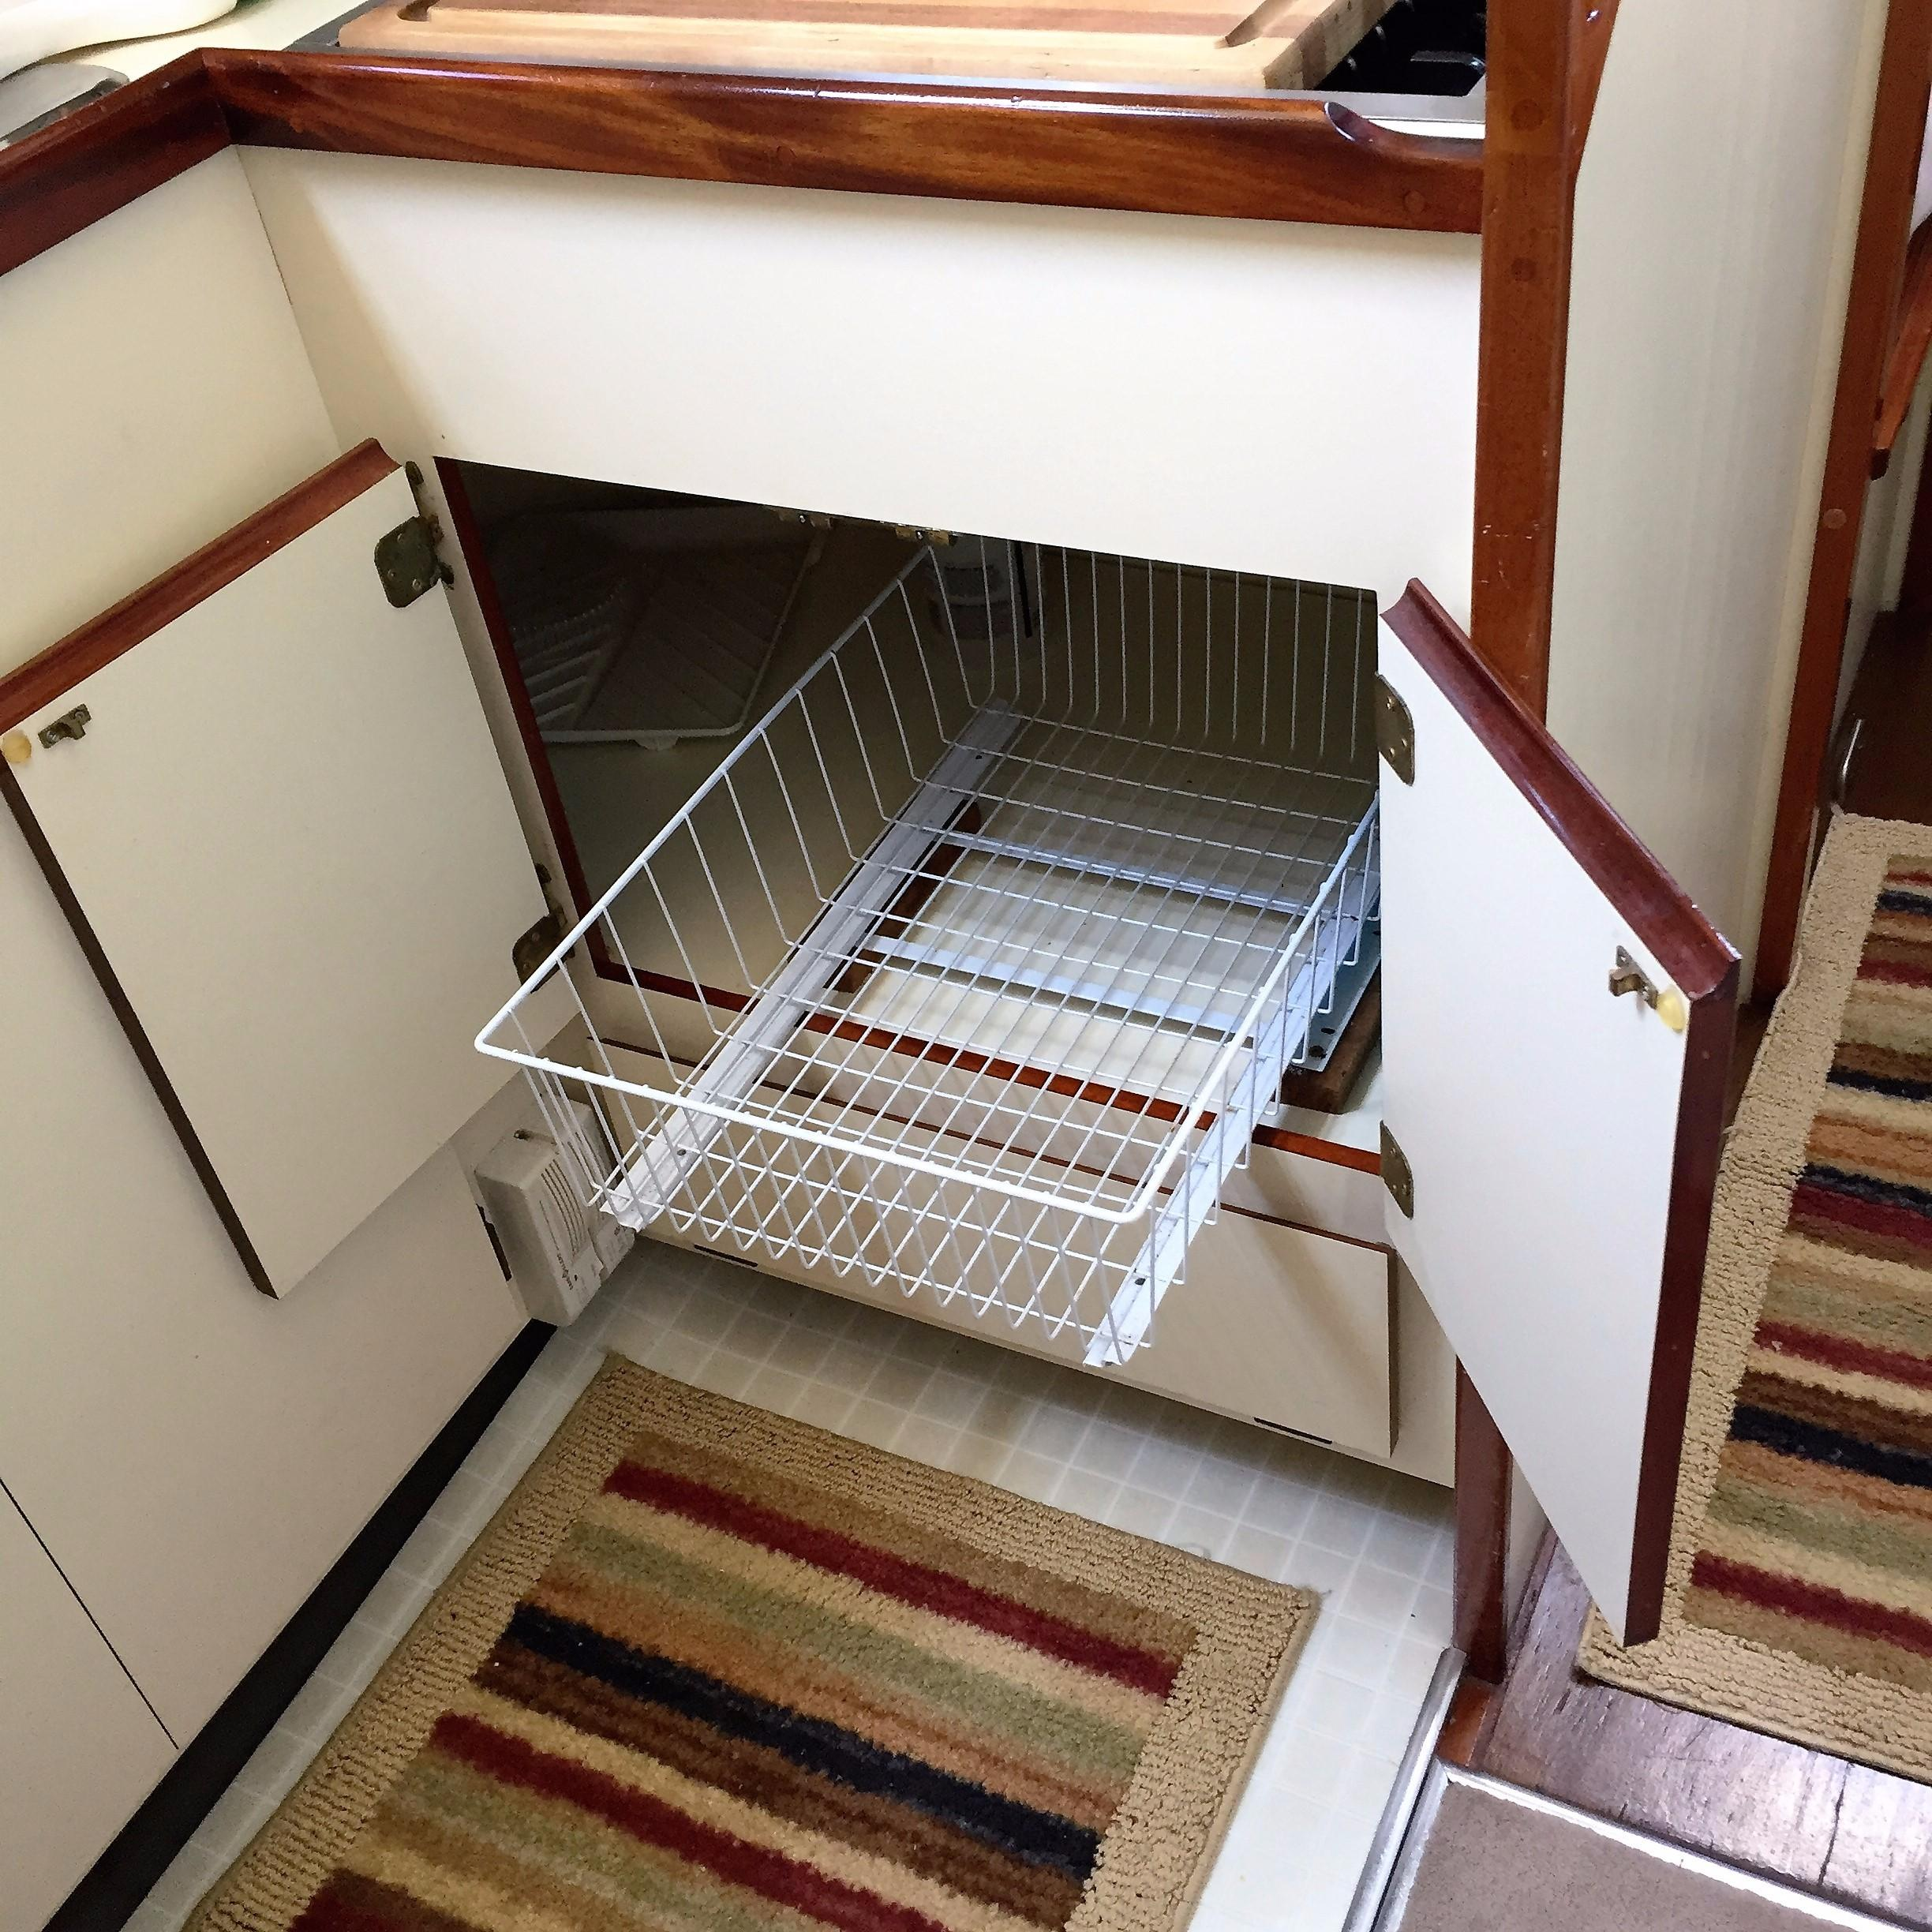 Galley Storage Under Stove